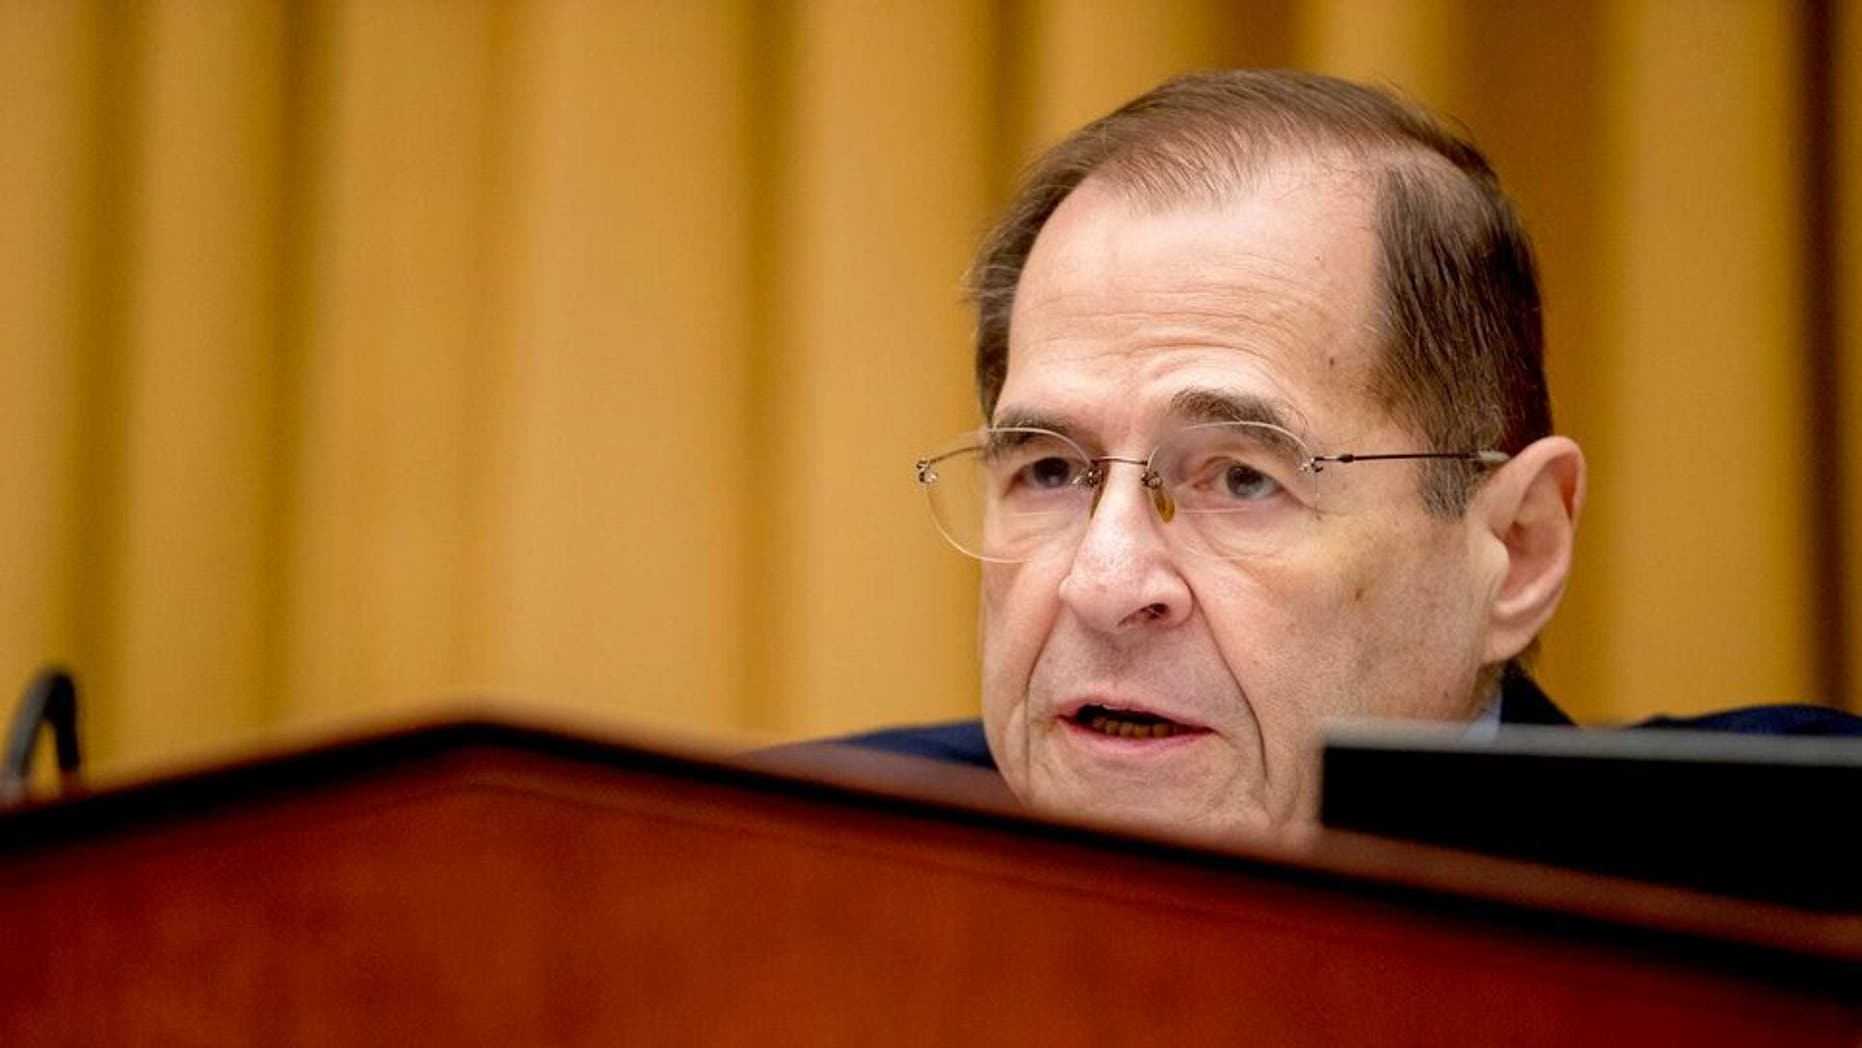 FILE - On Friday, February 8, 2019, in the photo system, the Judge Committee Chairman Jerrold Nadler, DN.Y., Advocate General Matthew Whitaker, as appearing in Washington, before the Capitol Hill House Judicial Committee a. The Democrats formulated by their new majority are conducting a wide range of new investigations into President Donald Trump and defining the Robert Müller world. Nadler helped drive the prize to put pressure on the Ministry of Justice to release Mueller's full report to the public. (AP photo / Andrew Harnik, file)